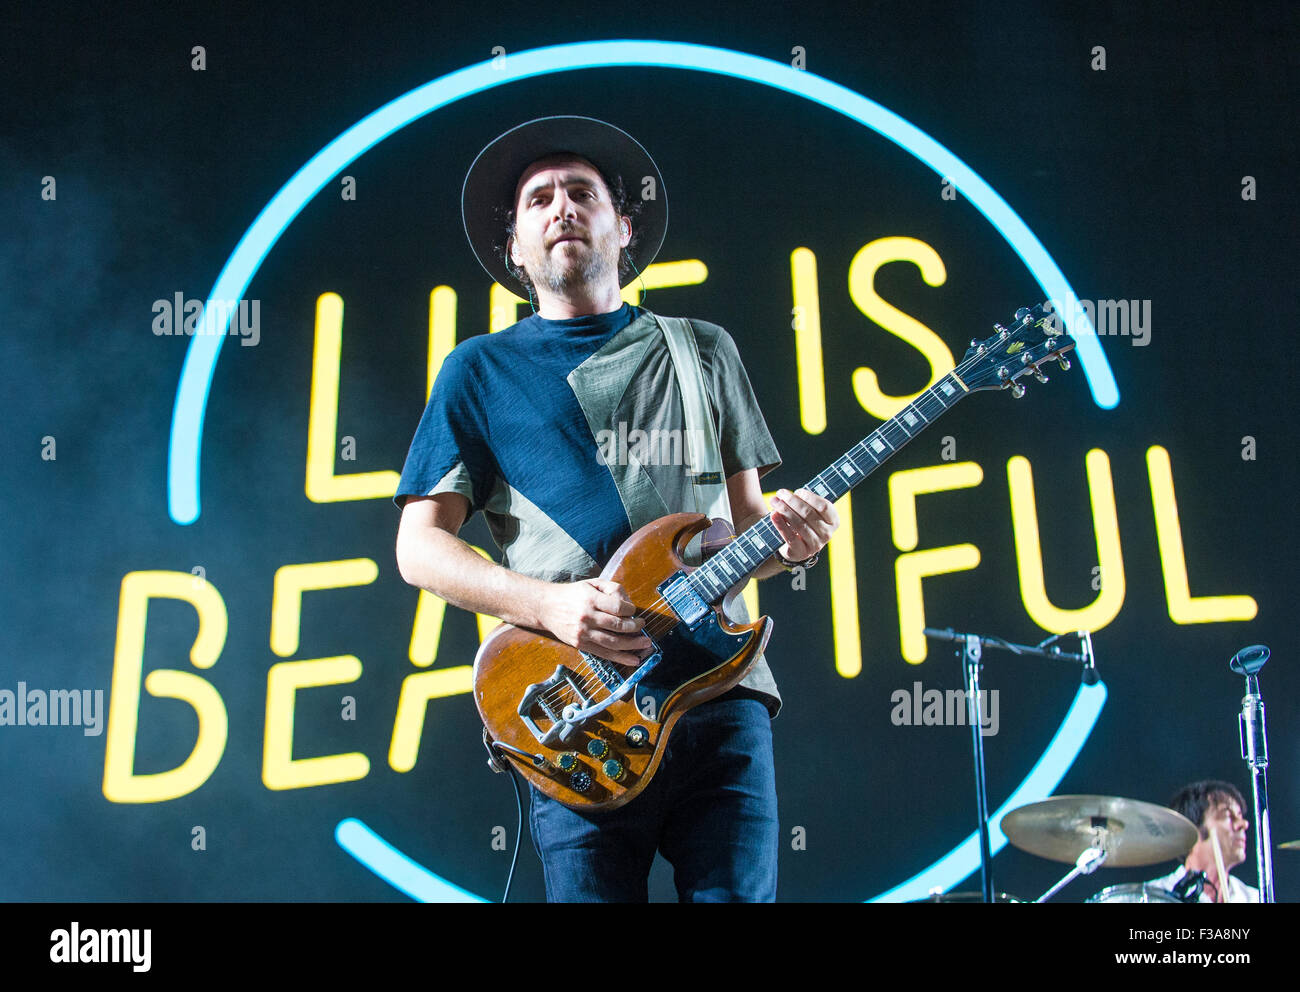 Musician James Shaw of Metric performs onstage at the 2015 Life Is Beautiful Festival in Las Vegas - Stock Image